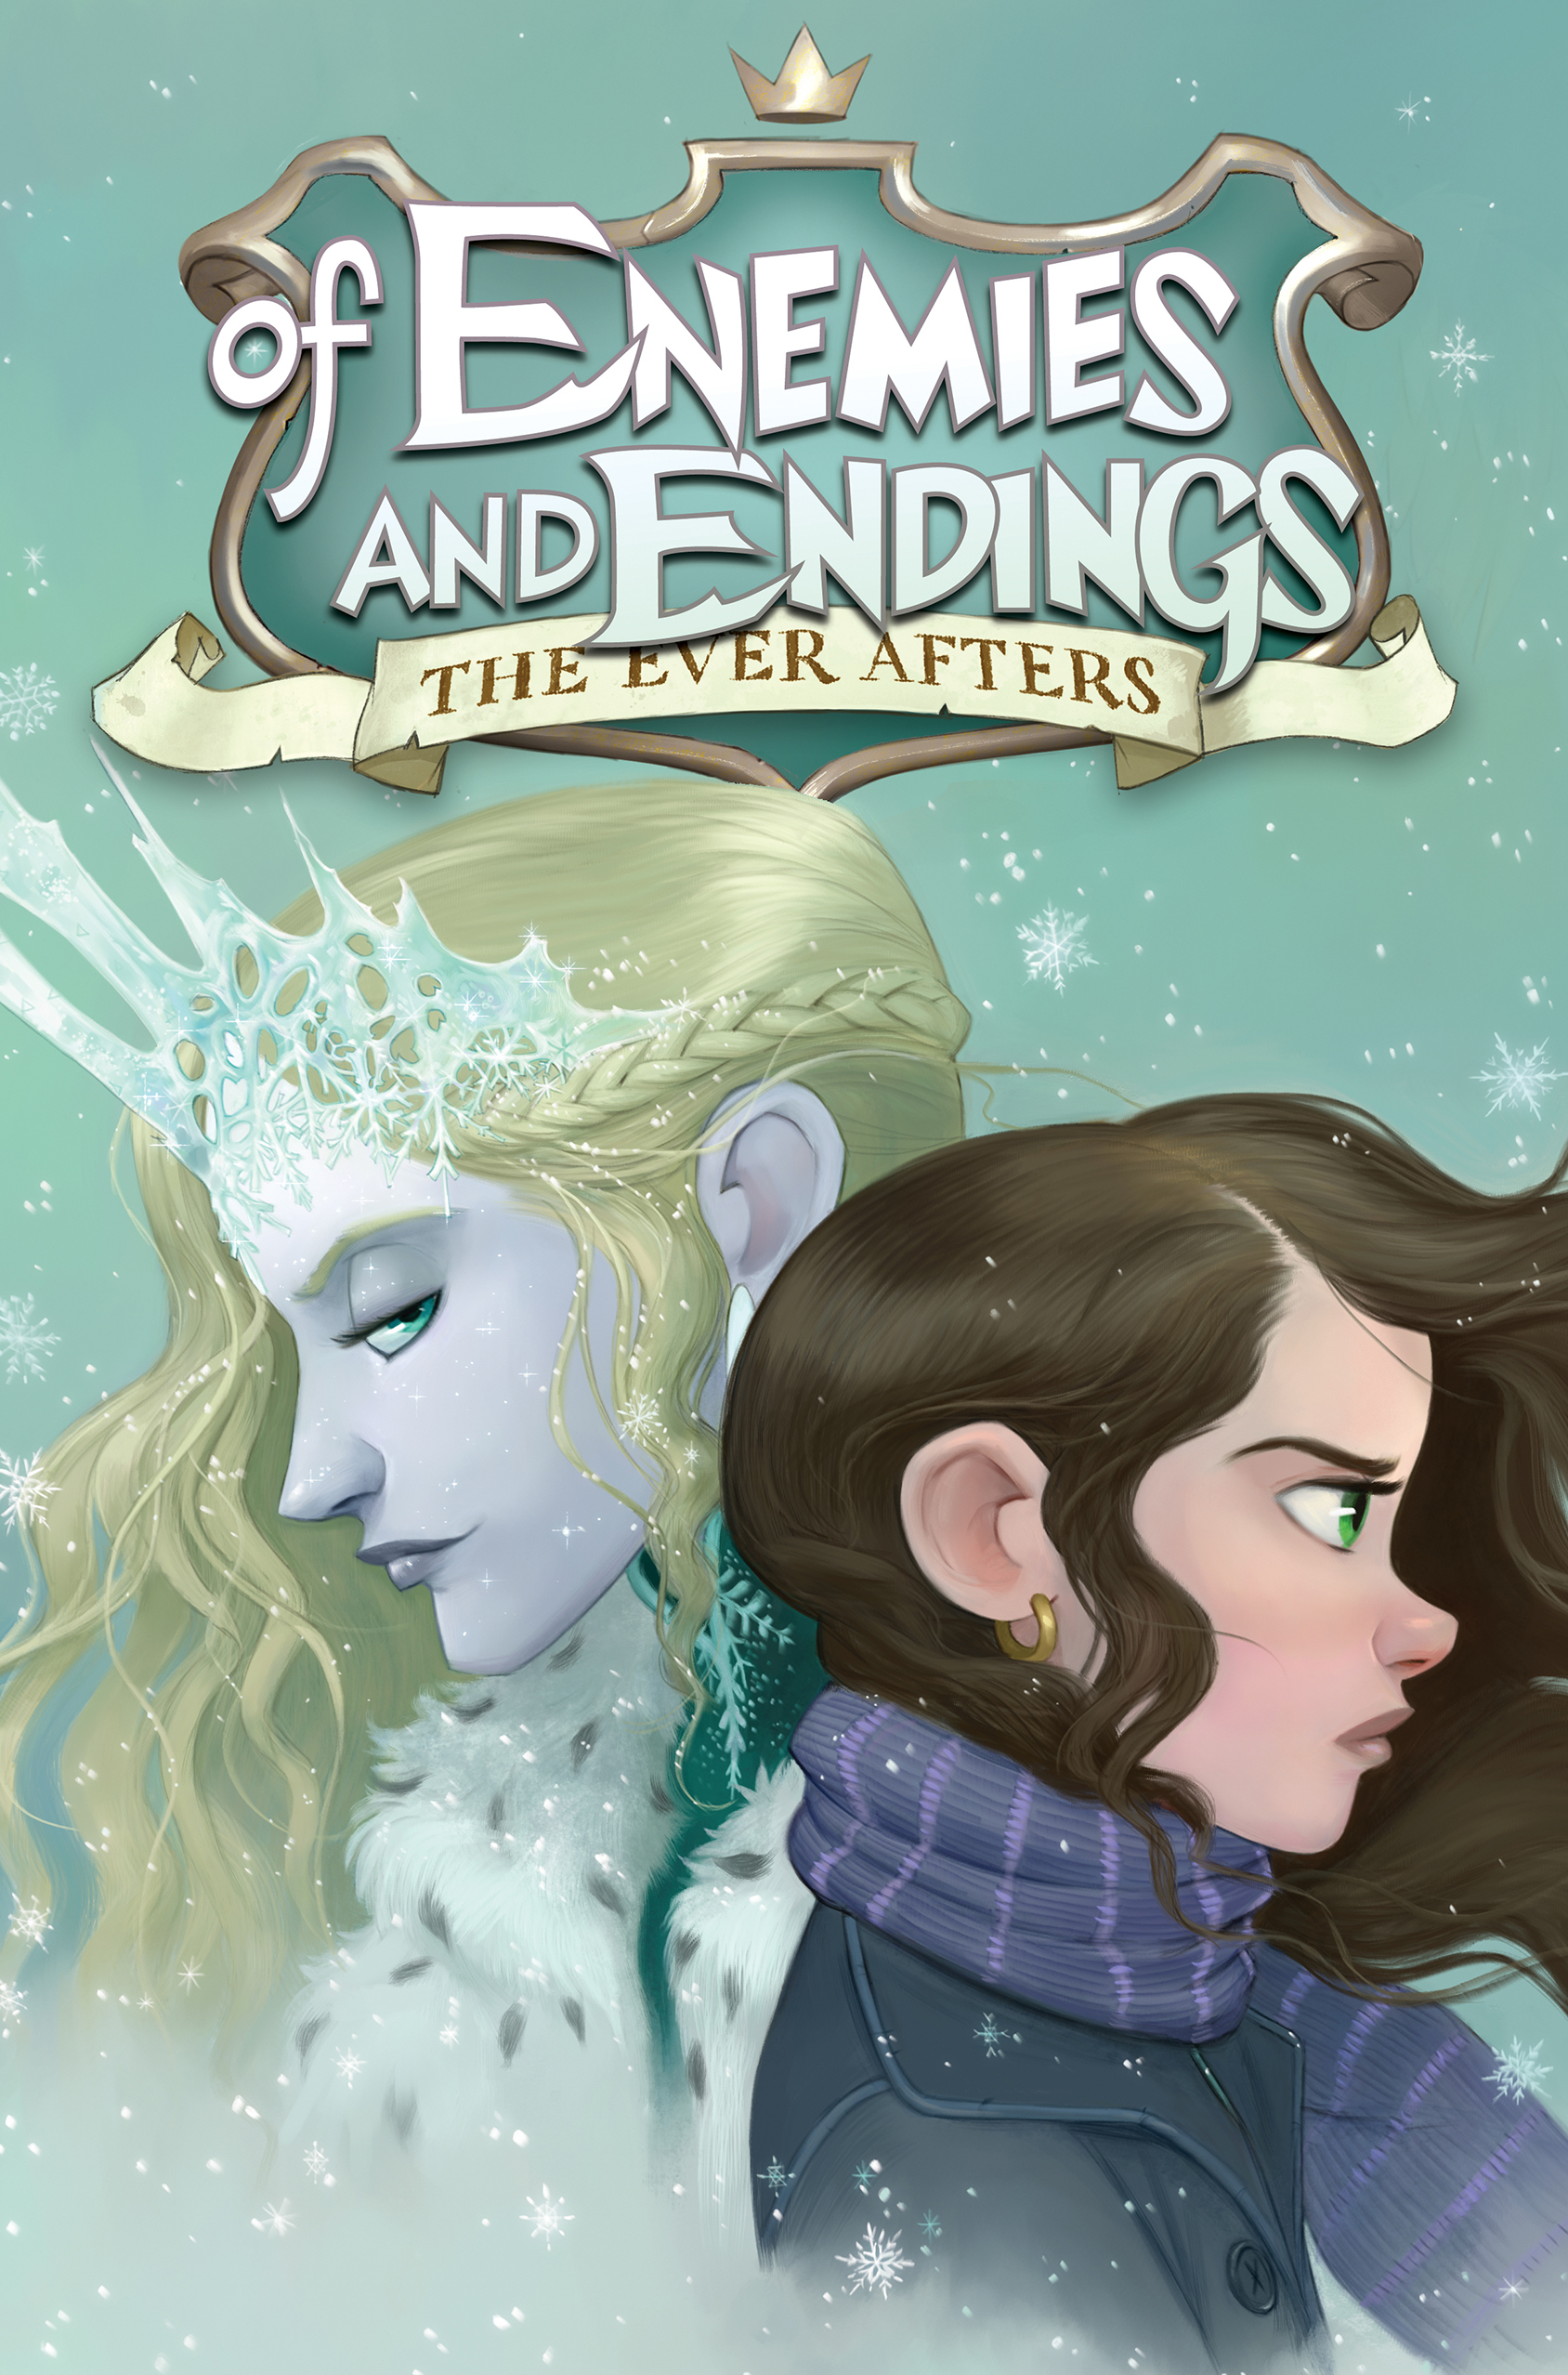 MG Book Review: Of Enemies and Endings by Shelby Bach